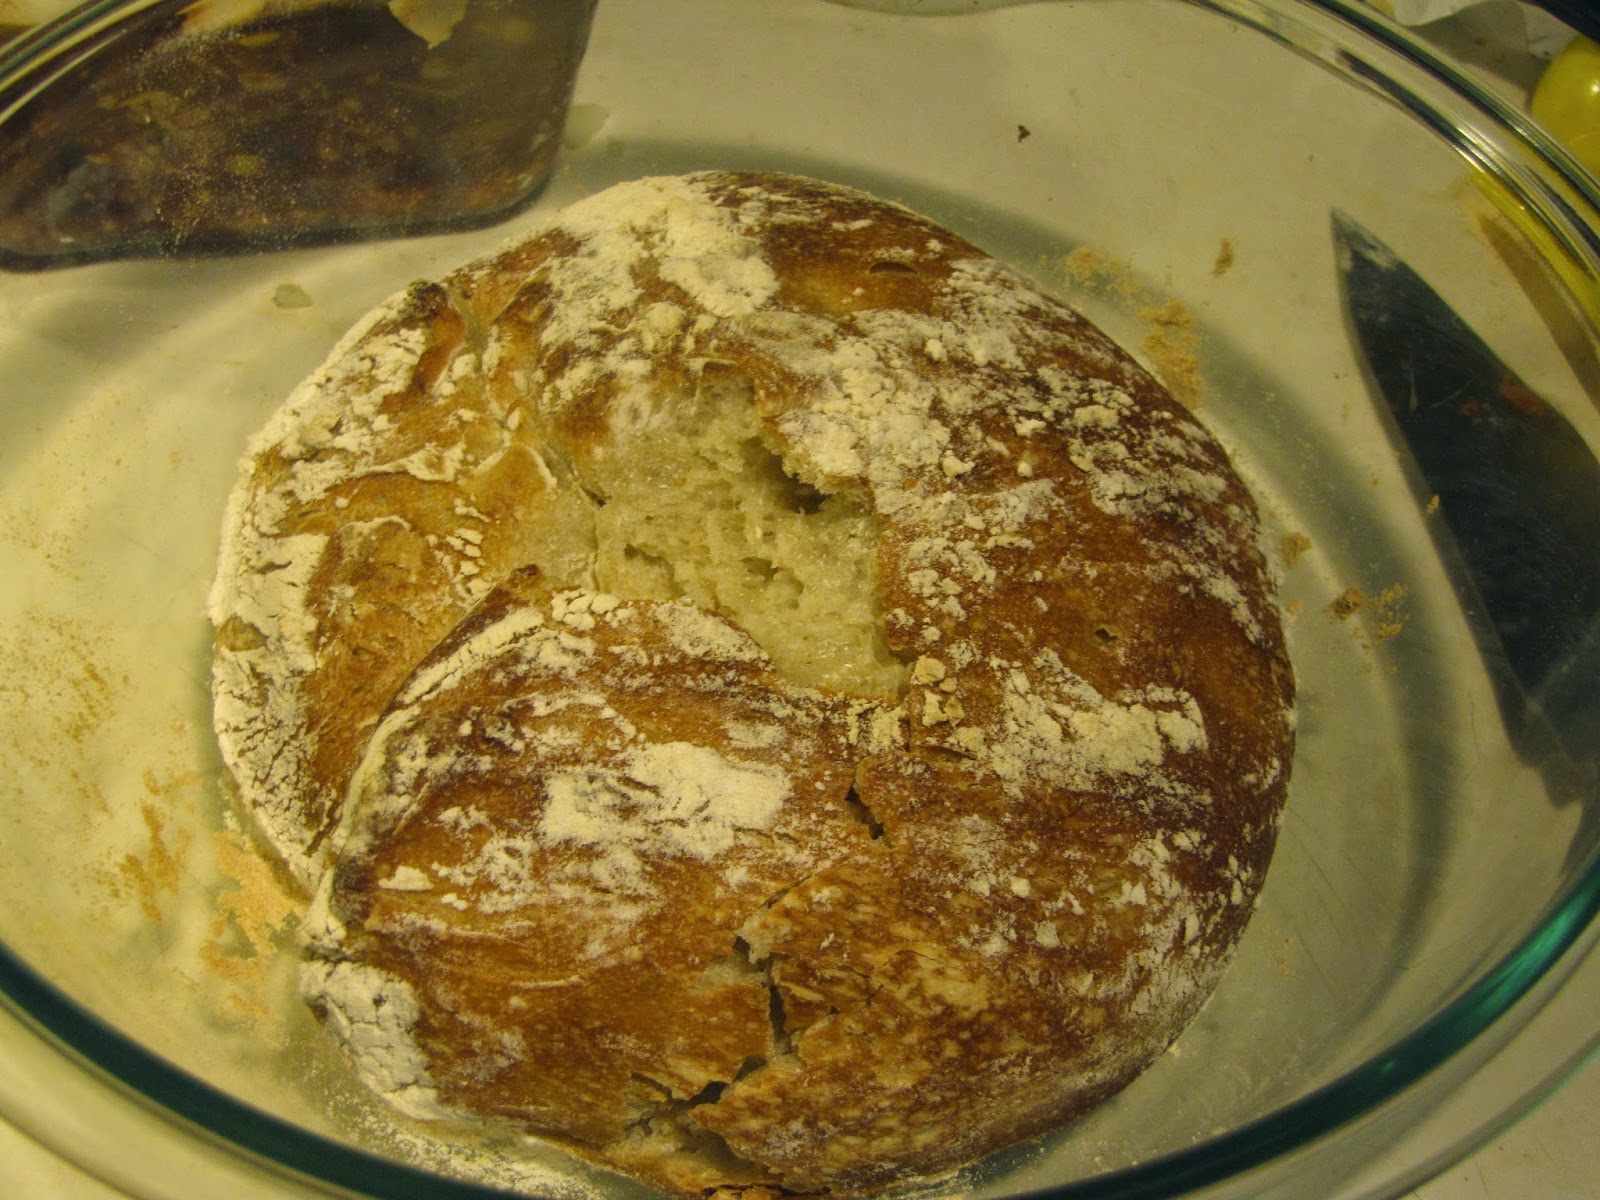 Freshly Baked Bread in a Pyrex dish